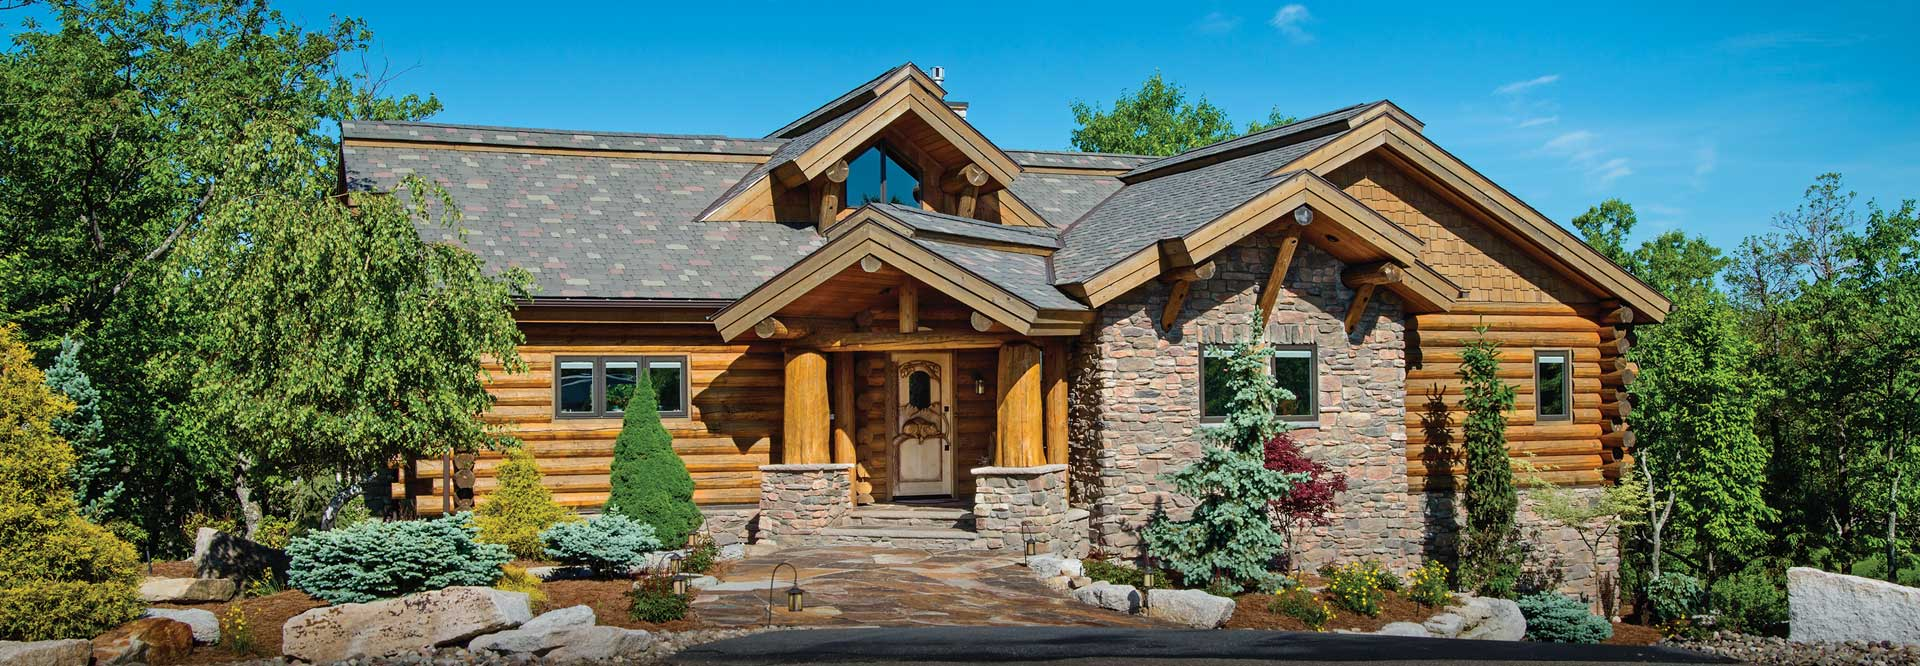 Milled Log Home